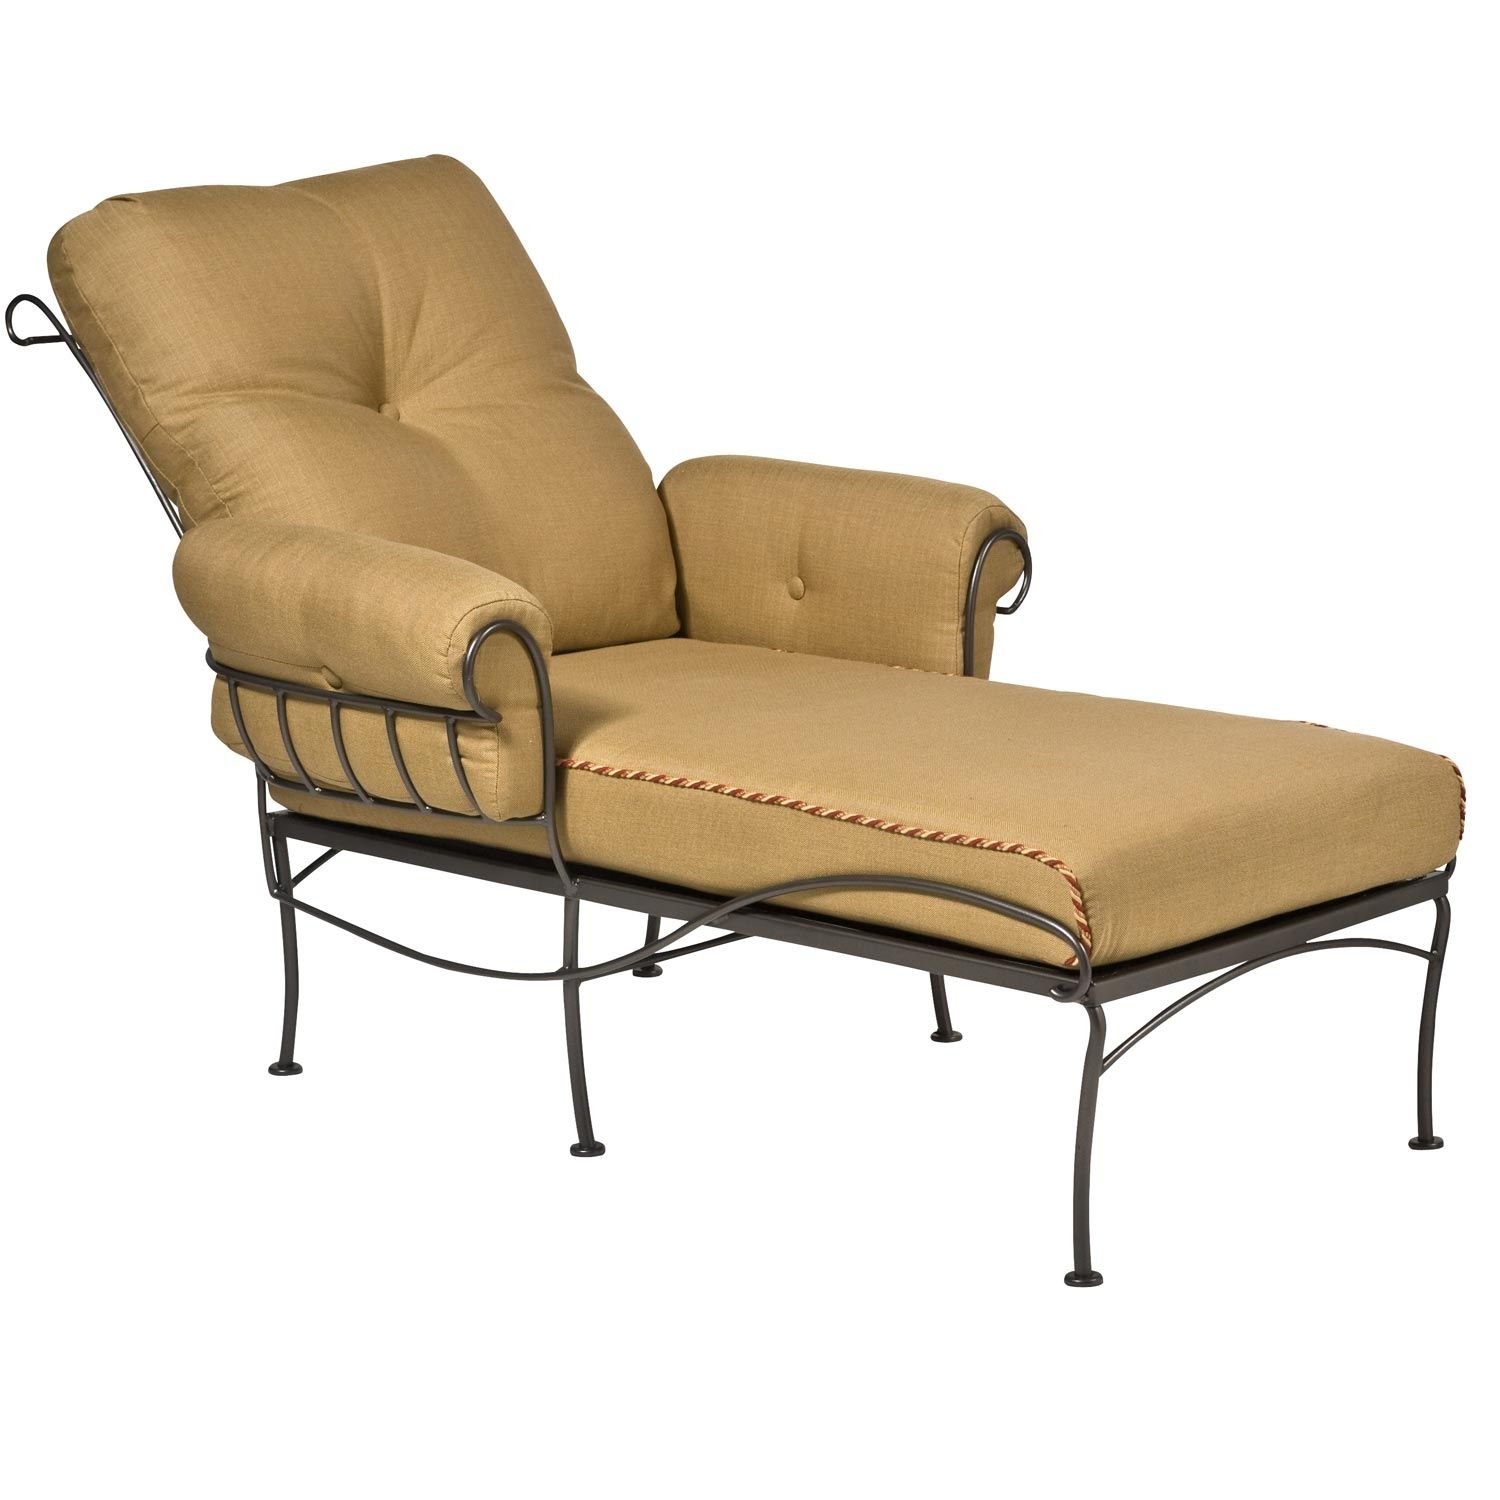 buy the stationary chaise lounge for your yard online